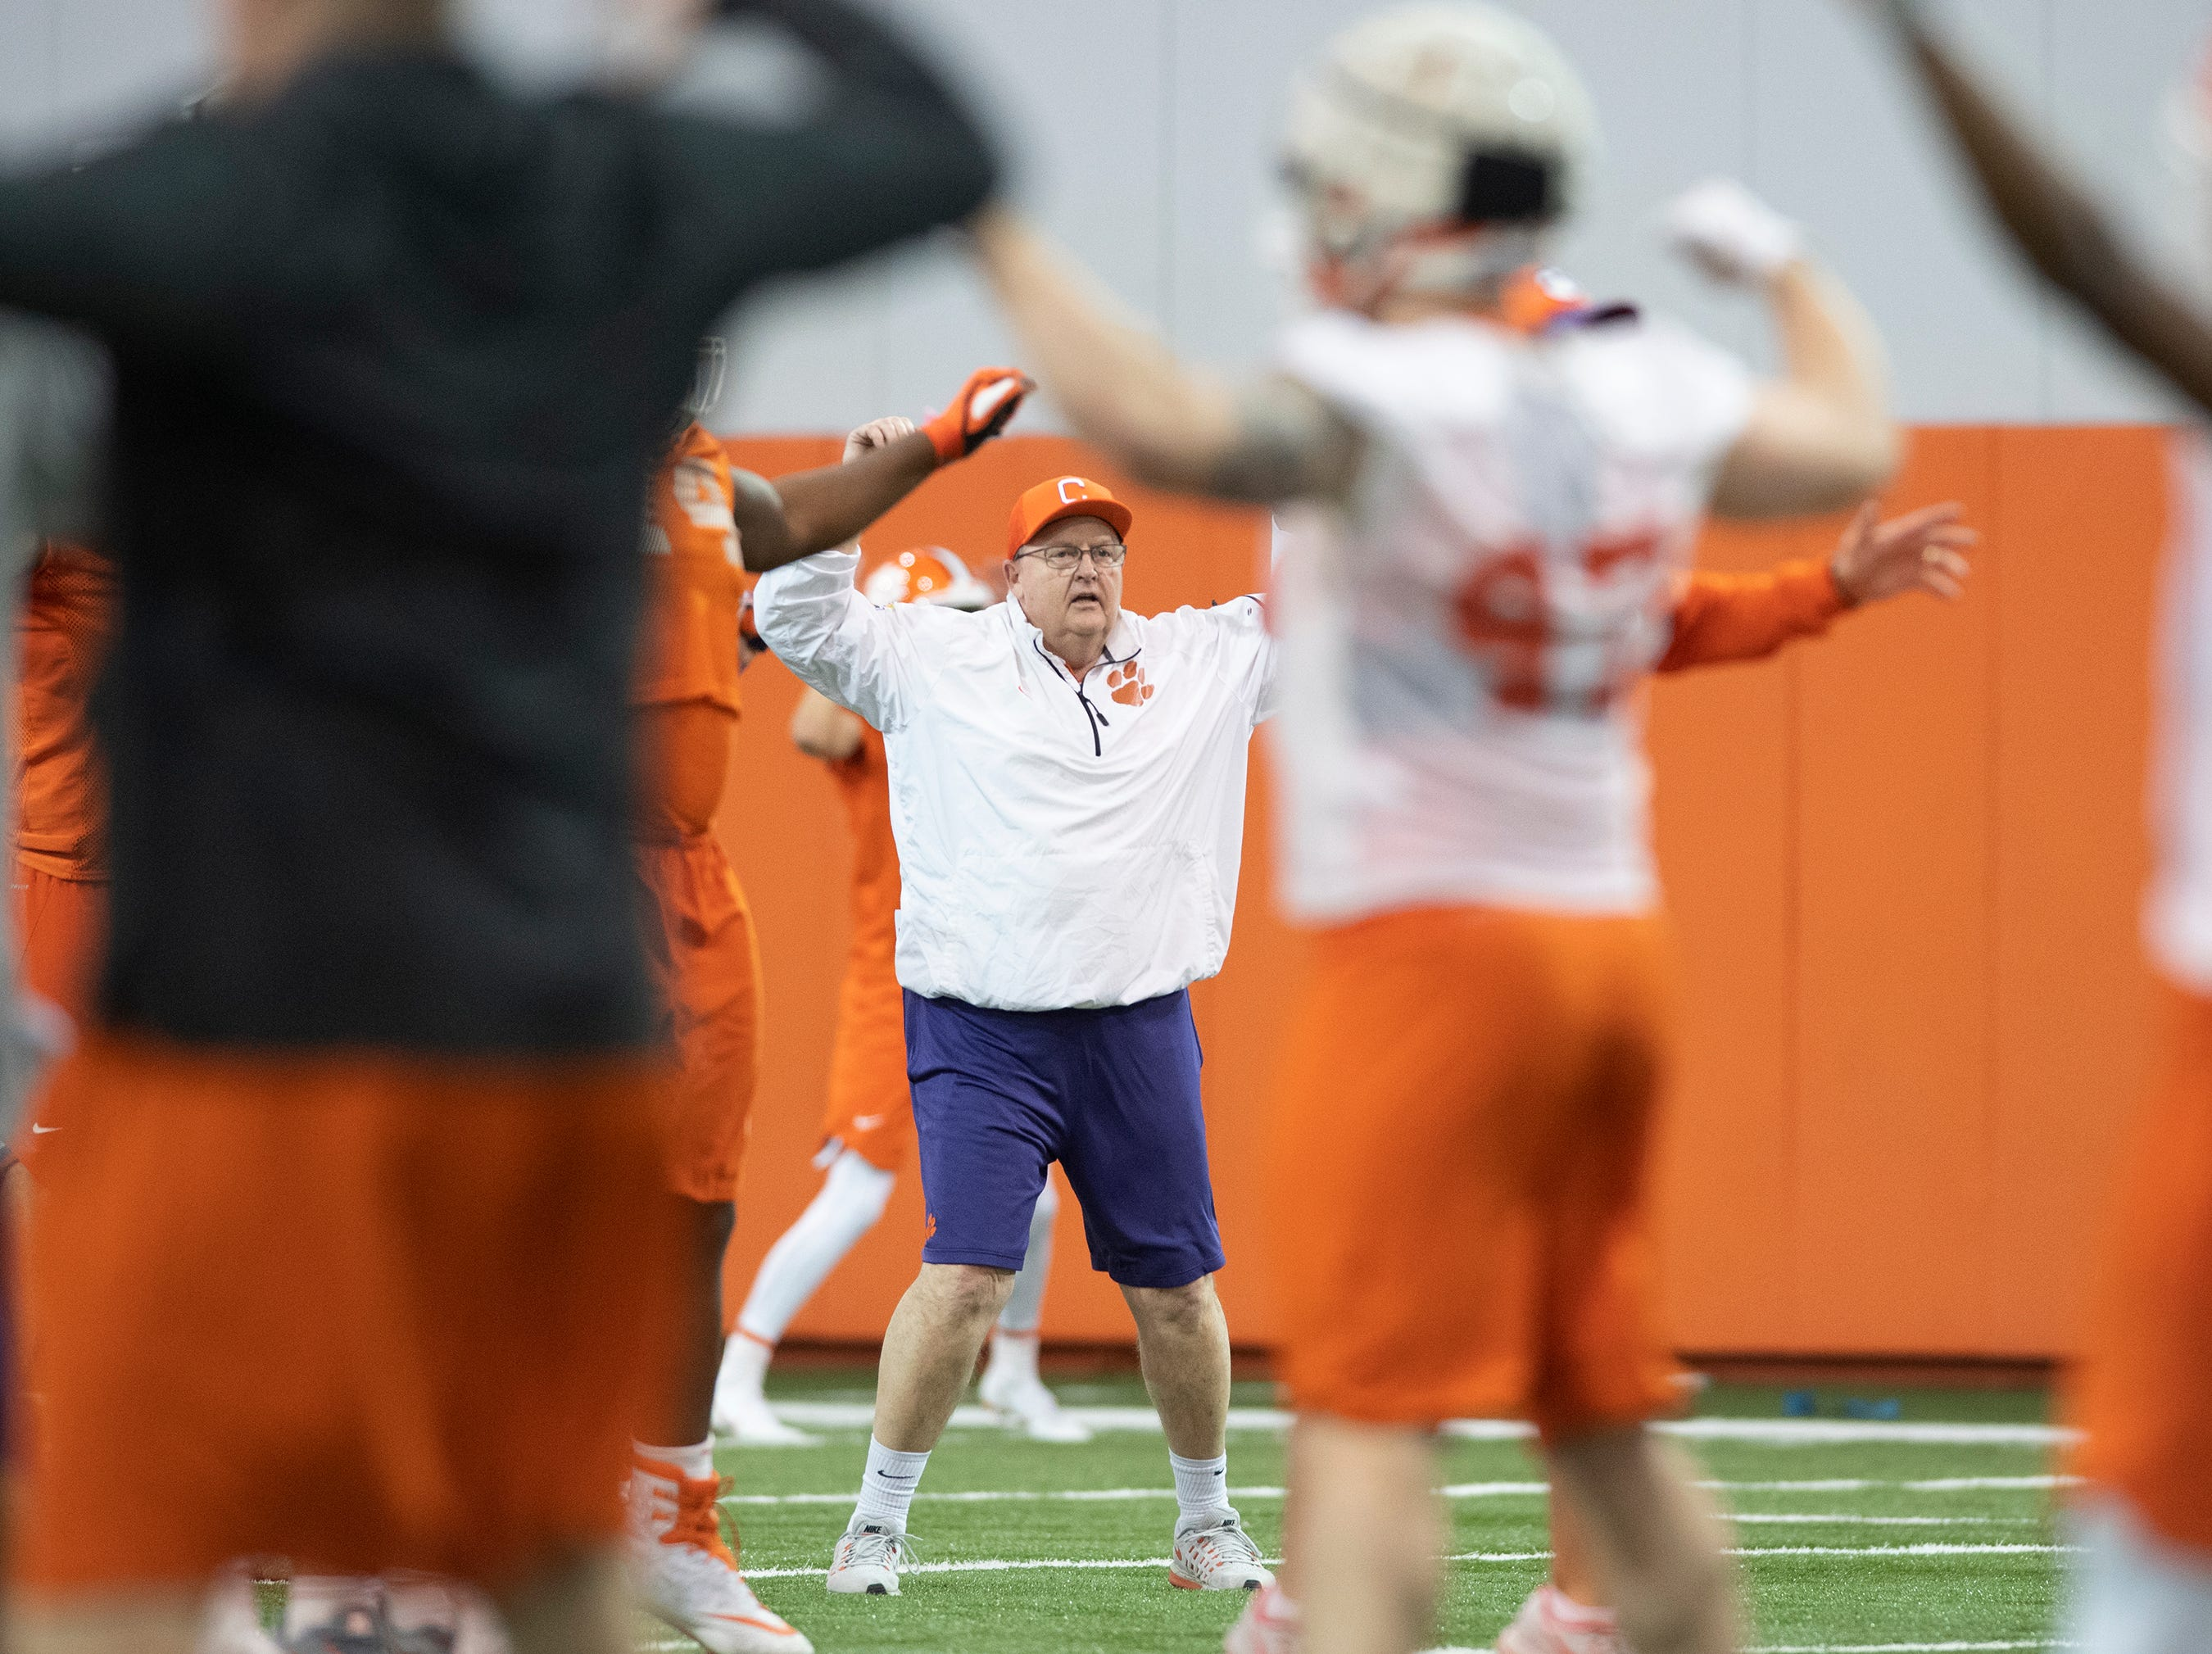 Clemson assistant coach Robbie Caldwell does jumping jacks with the team during football practice at the Poe Indoor Football Facility Friday, Mar. 1, 2019.